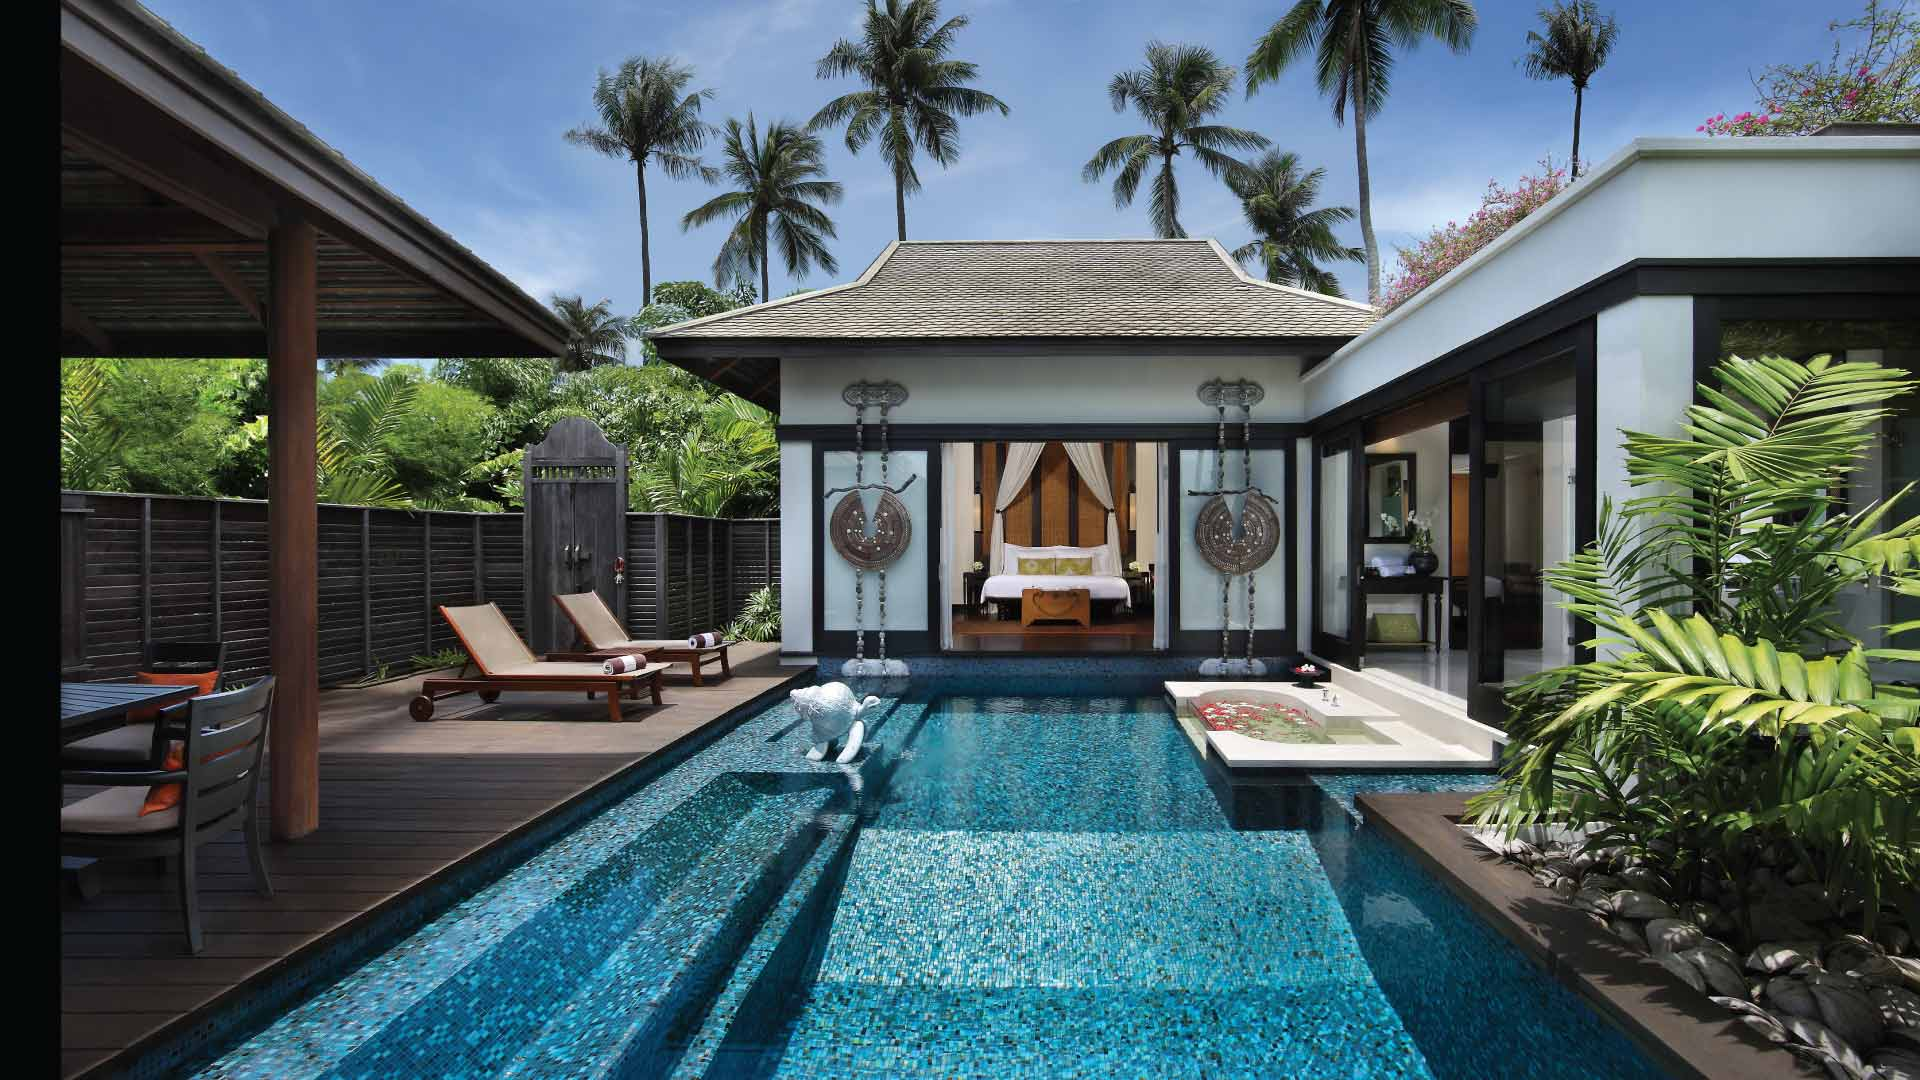 https://assets.anantara.com/image/upload/q_auto/media/minor/anantara/images/anantara-mai-khao-phuket-villas/the-resort/desktop-banner/anantara_maikhao_phuket_poolvilla_header_1920x1080.jpg